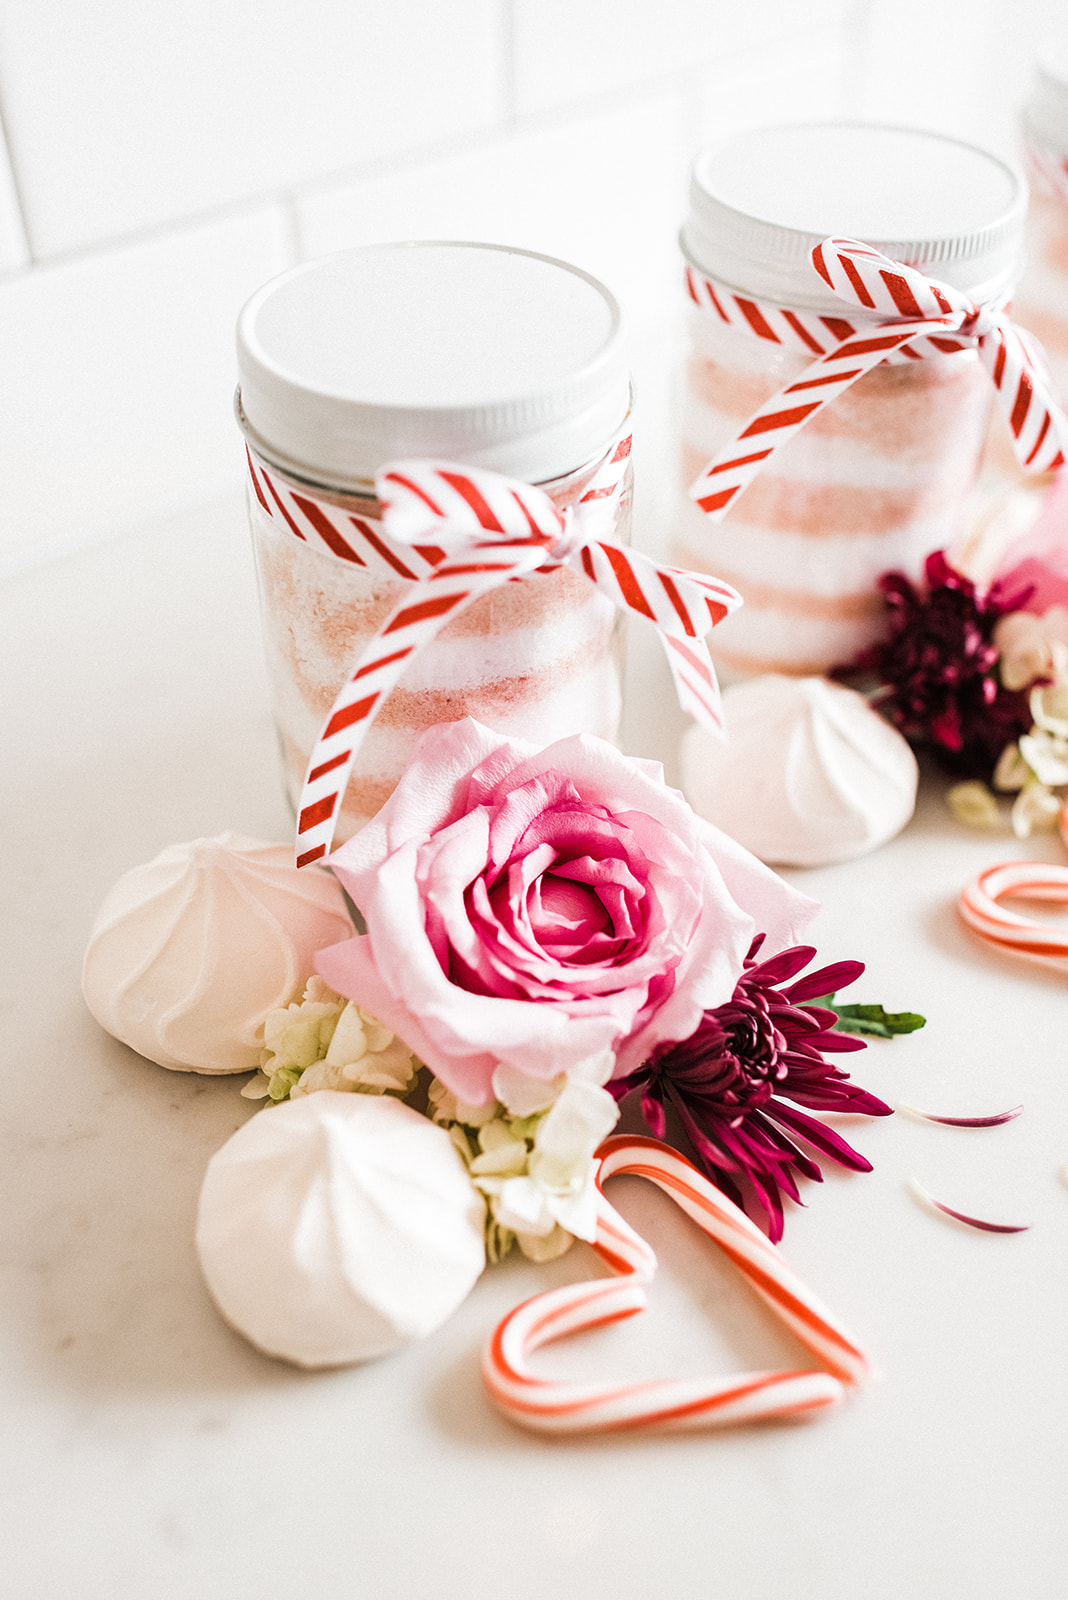 peppermint bath salts for a DIY Christmas gift